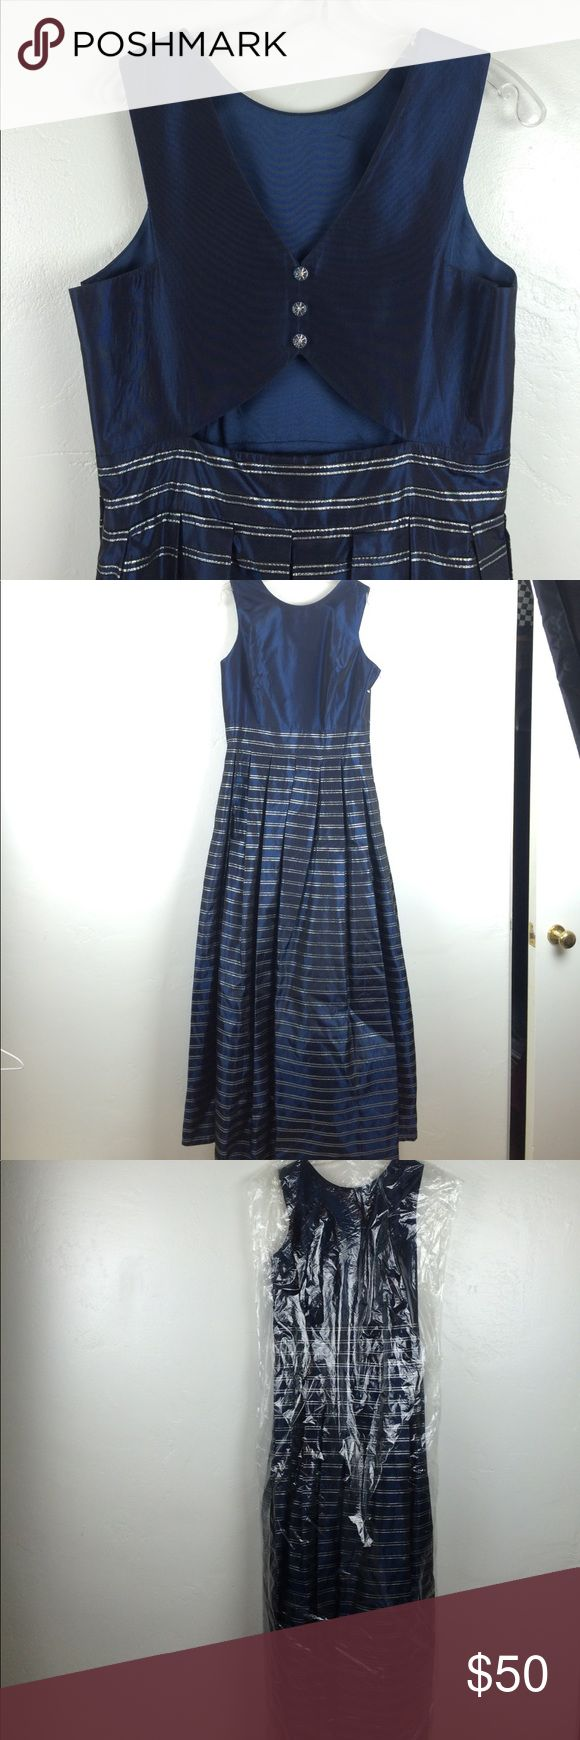 NWOT long dark blue silver stripes prom dress Gorgeous never worn prom or occasion dress. Rich midnight blue, slightly iridescent with shiny silver stripes on skirt. Back has a cut out with buttons for extra glamour. Kept in protection bag all the time. ever beauty Dresses Prom